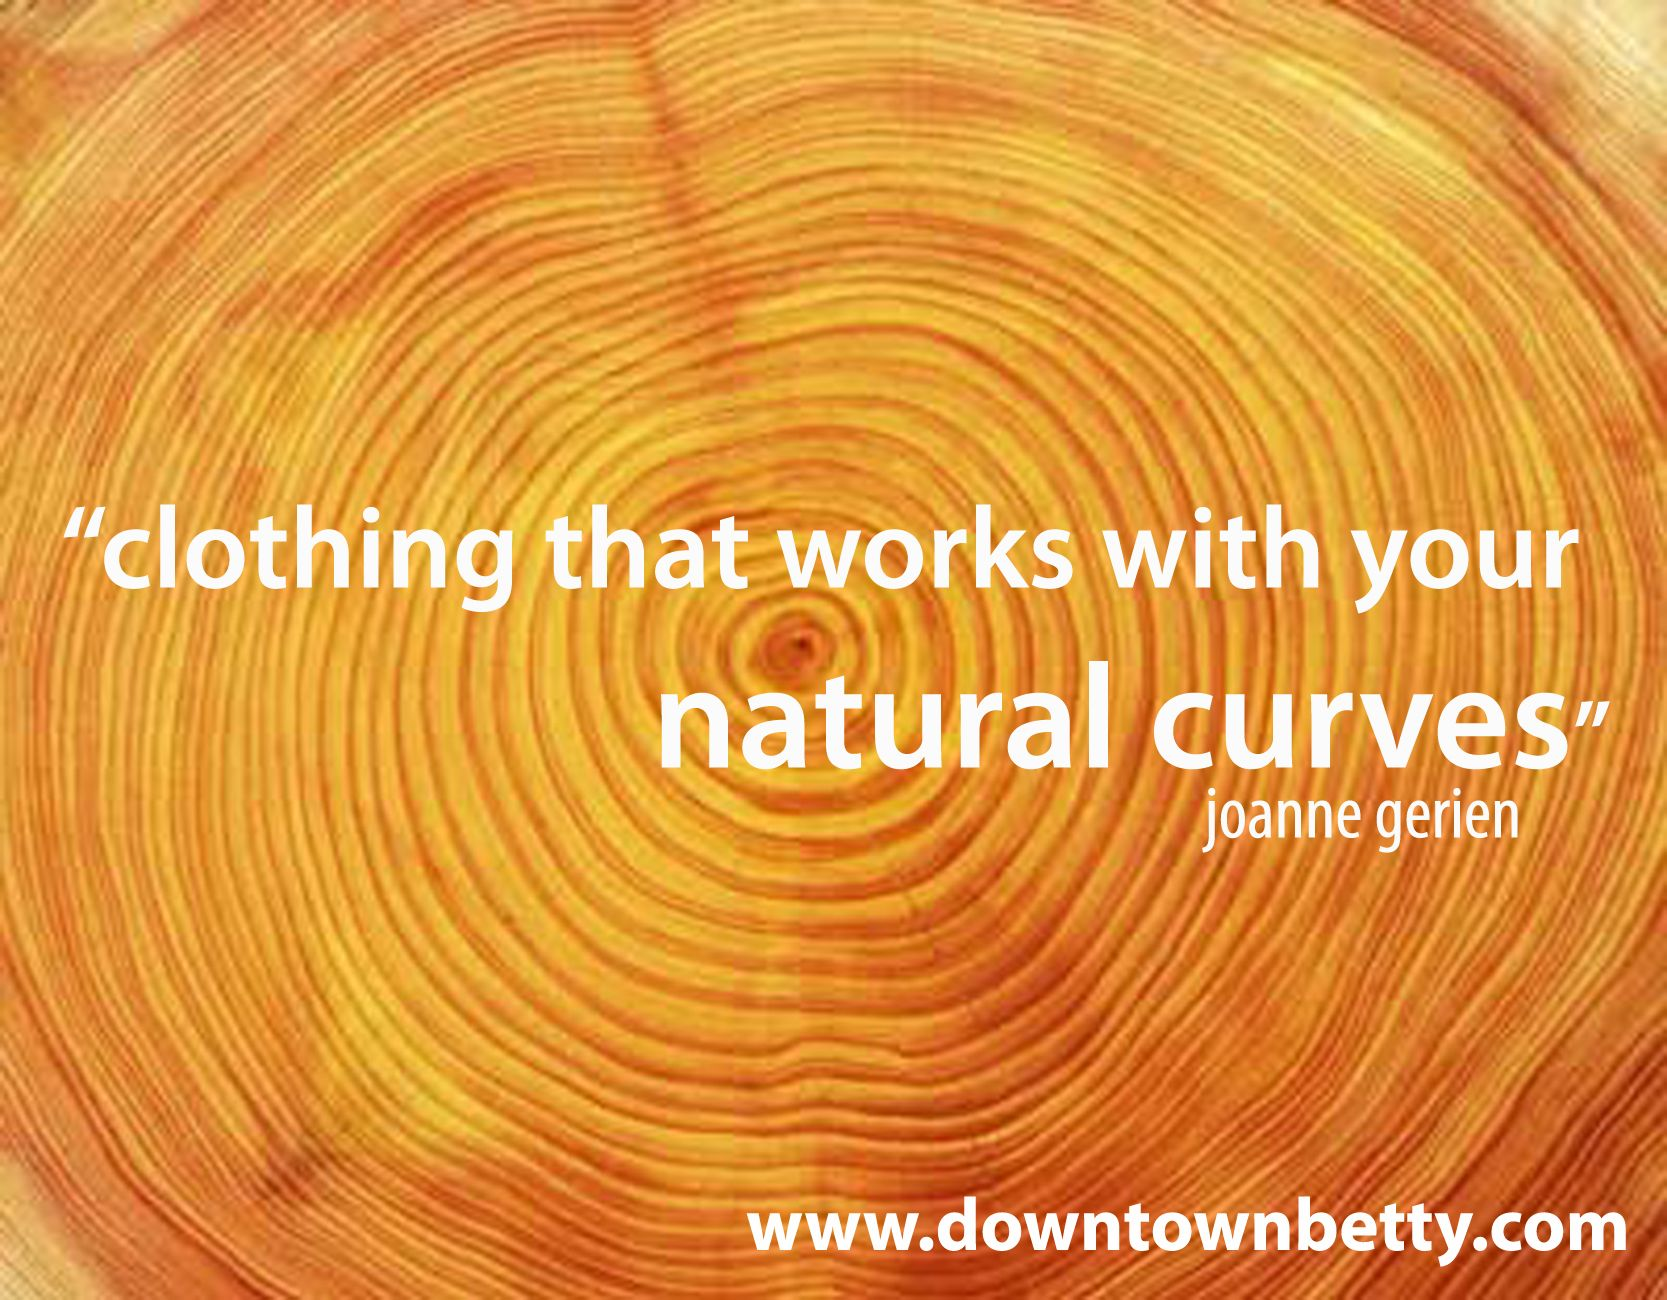 Natural Curves.  One of our favourite fashion statements ;)